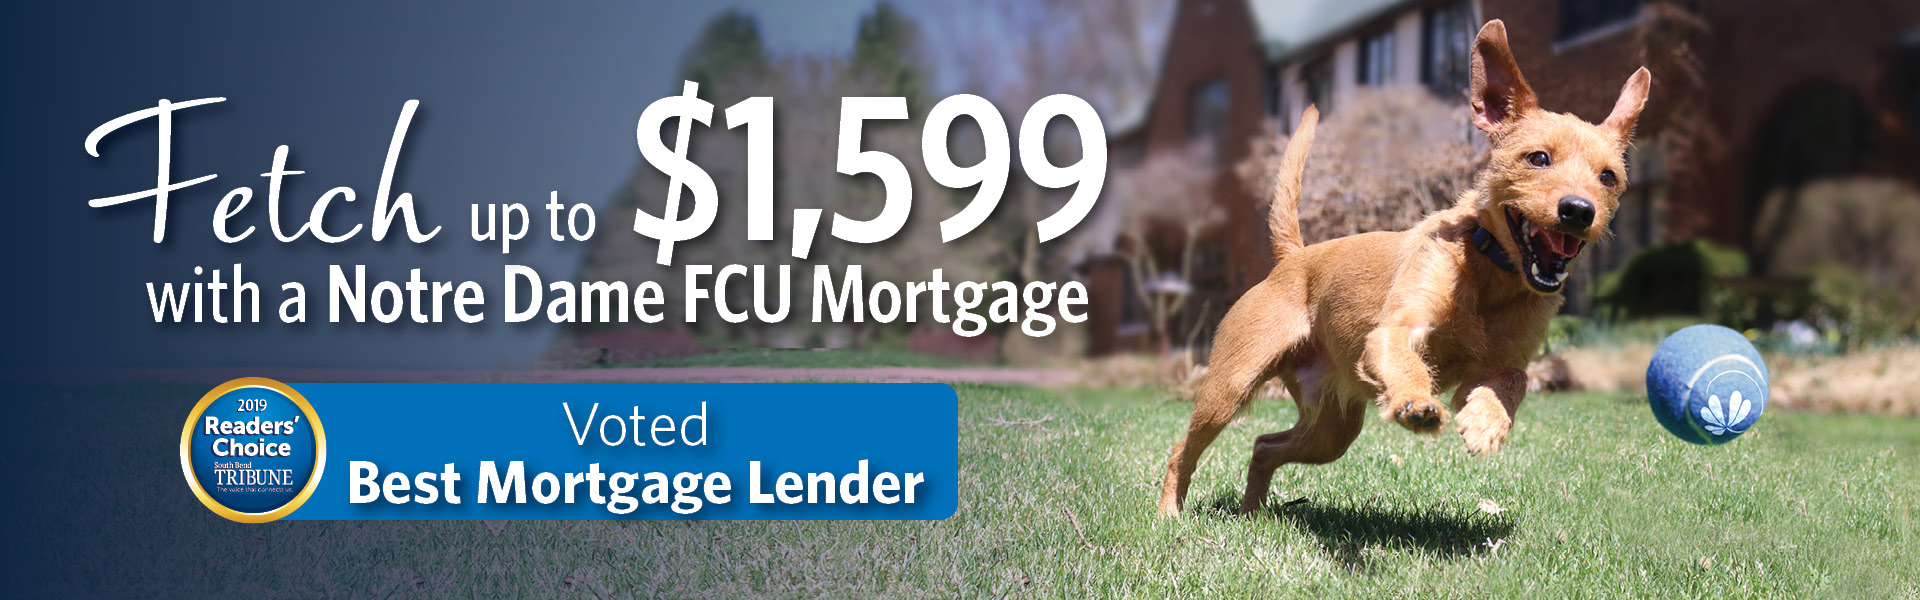 Fetch up to $1599 with a Notre Dame FCU mortgage. Voted Best Mortgage Lender 2019